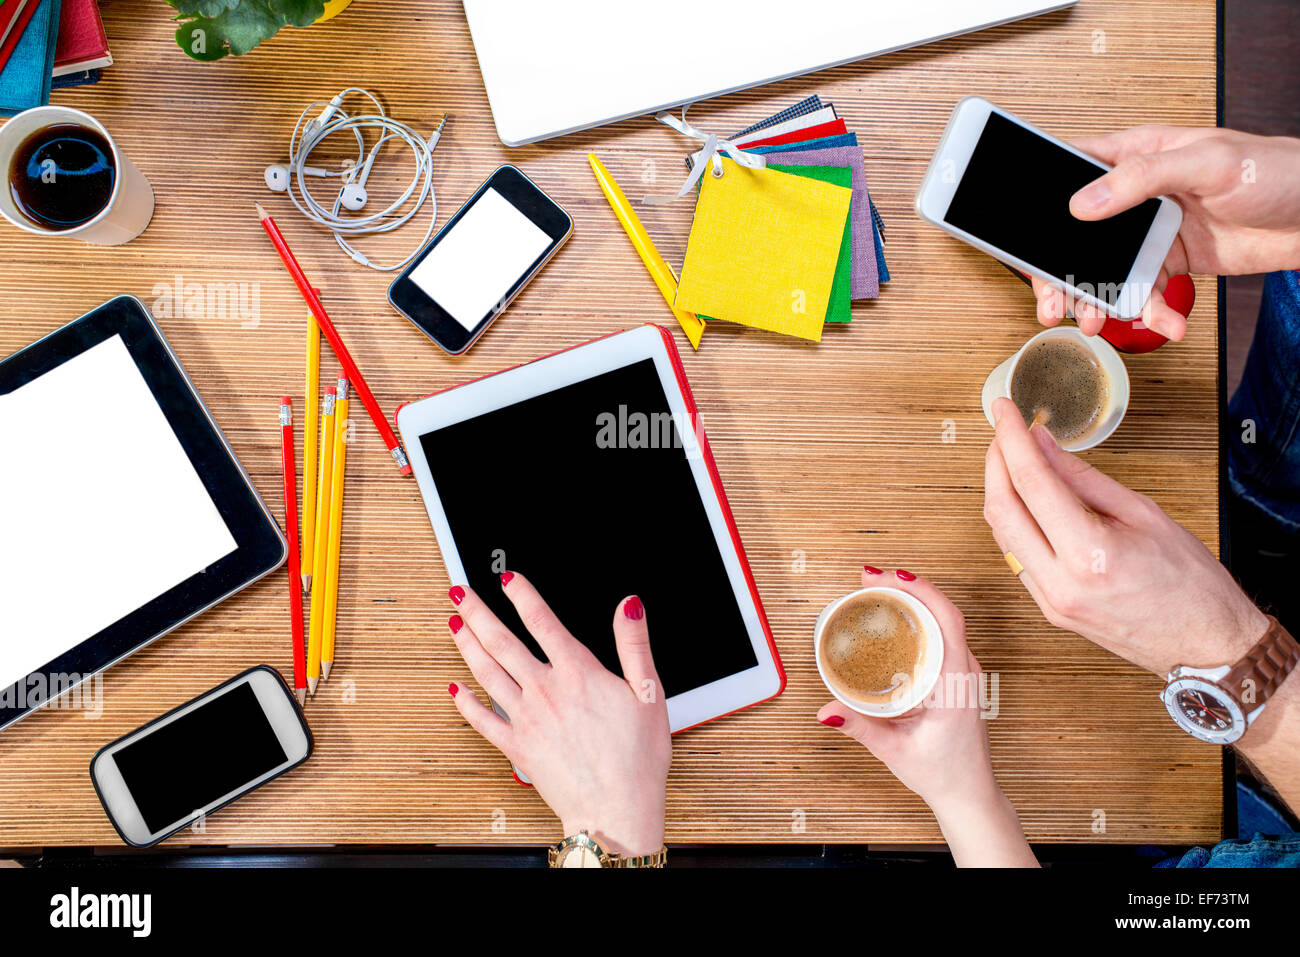 Working on table with gadgets - Stock Image